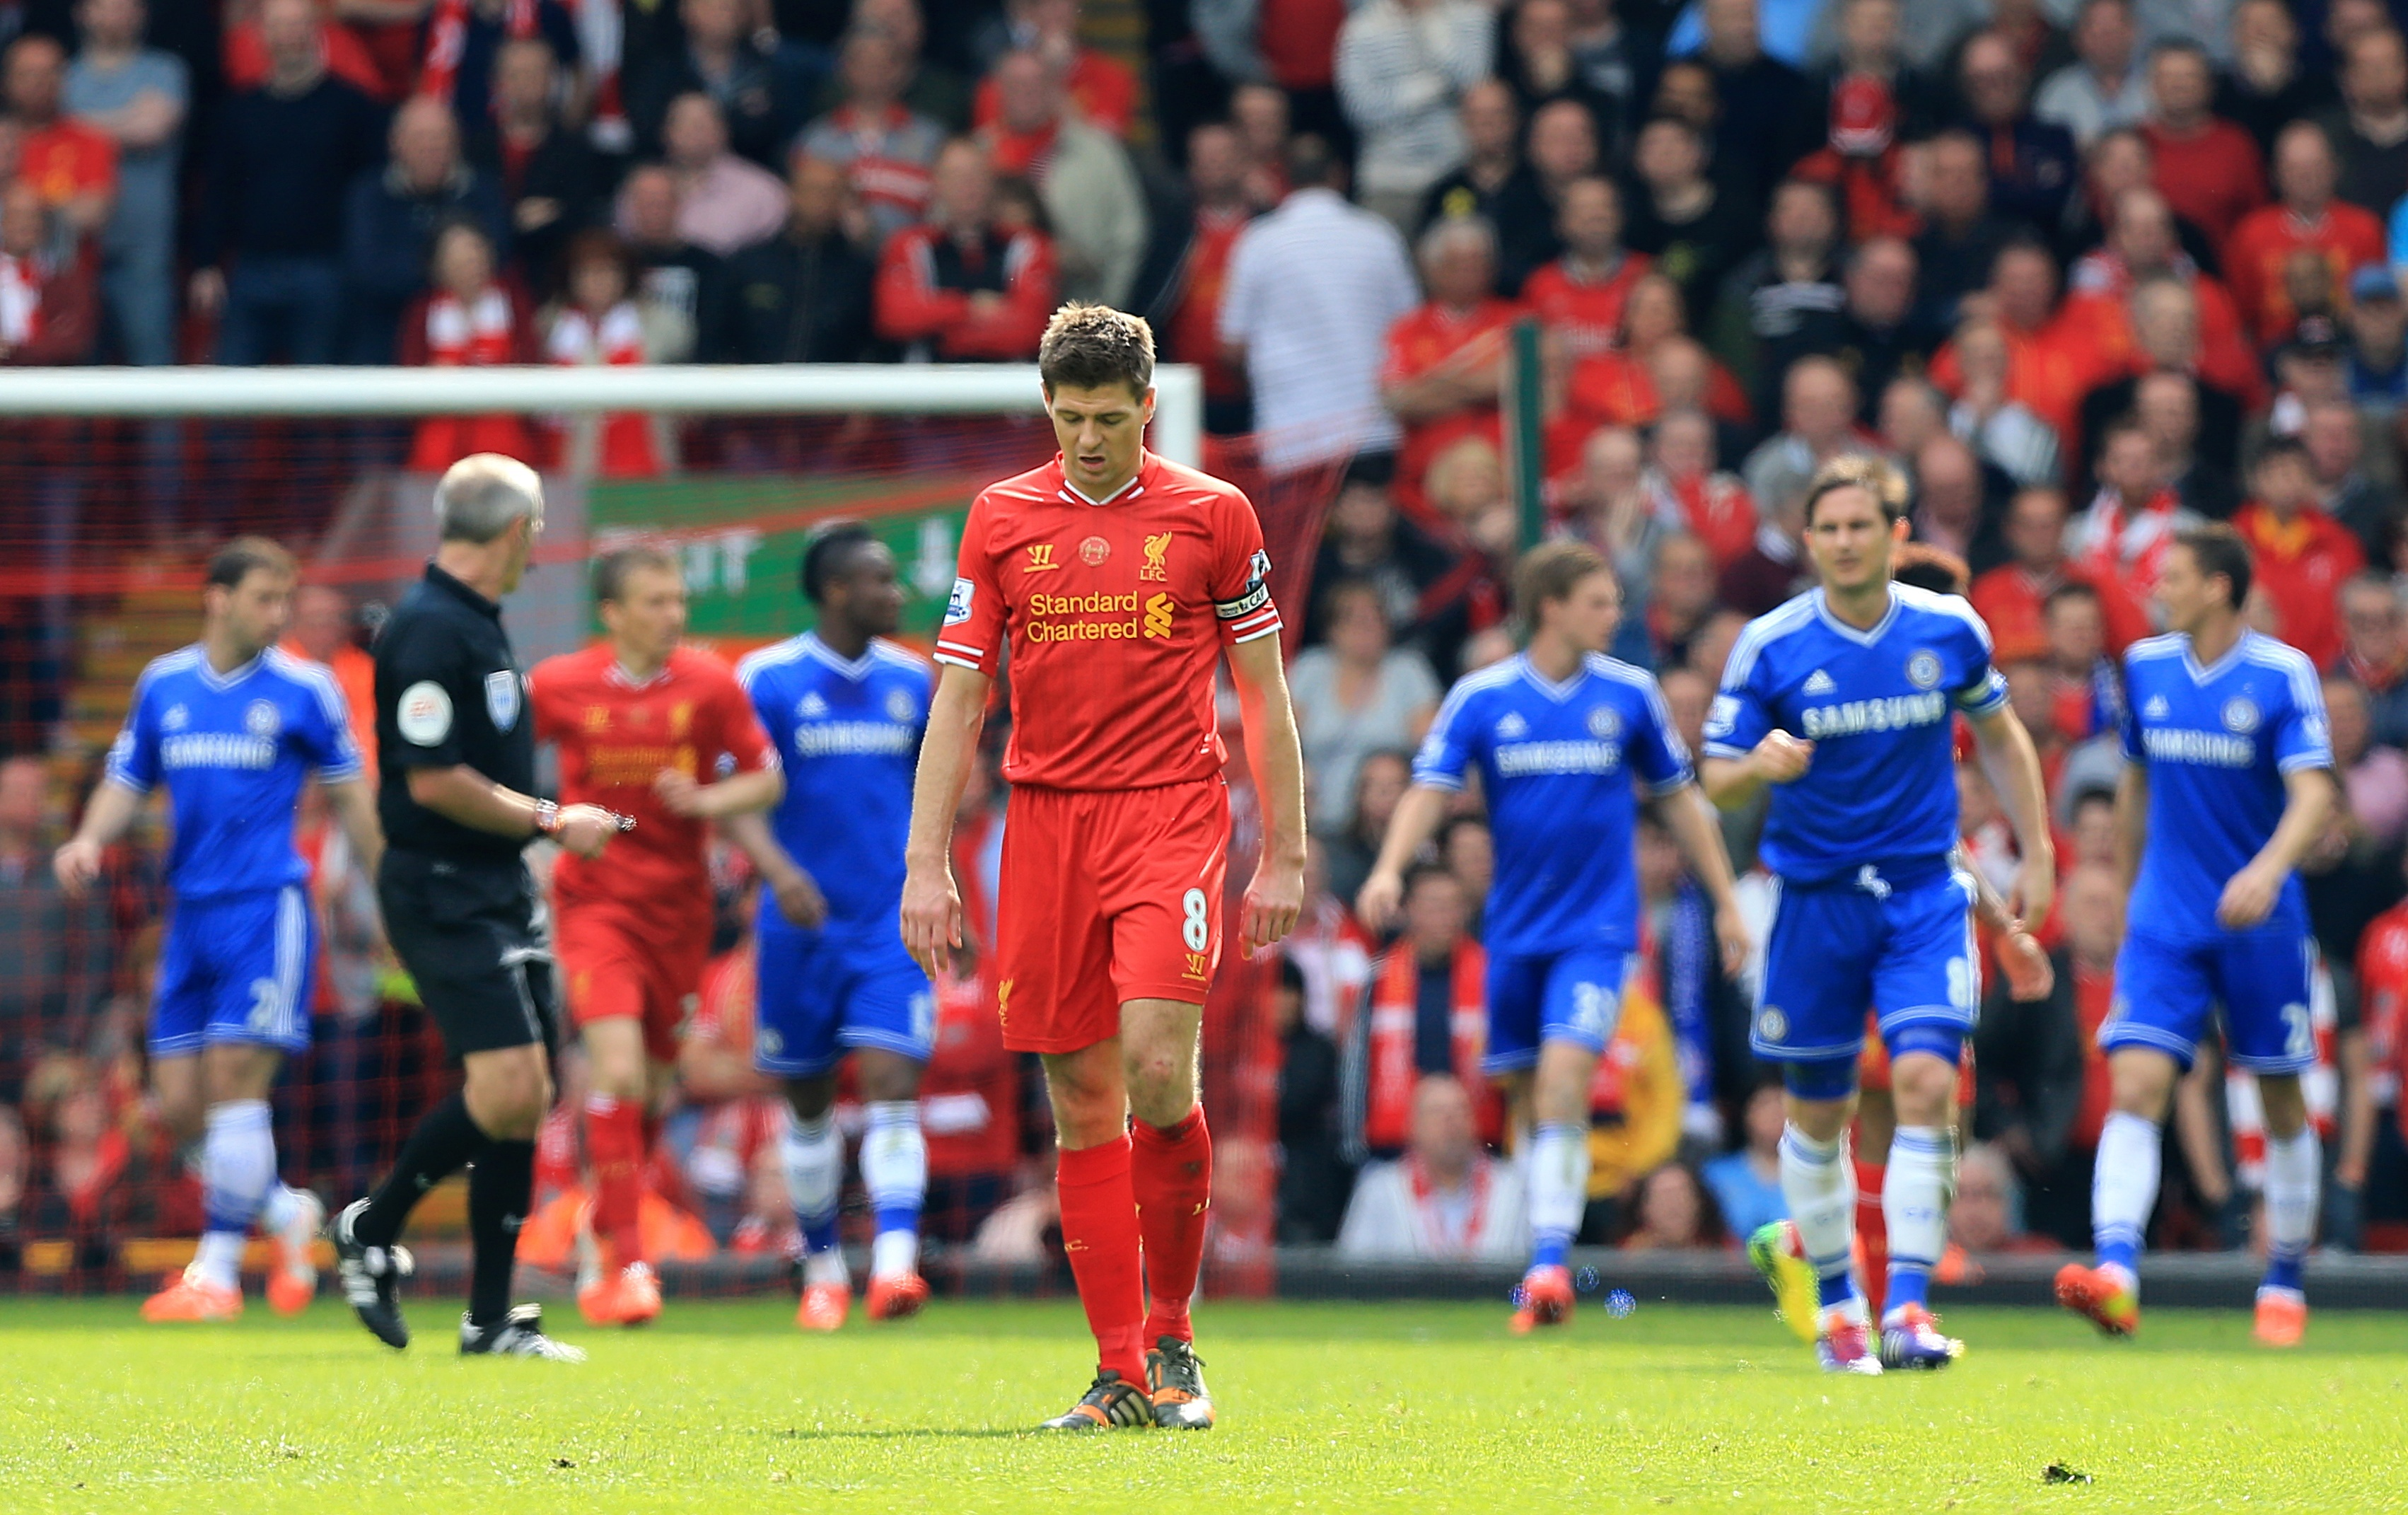 Gerrard after the infamous slip. Image: PA Images